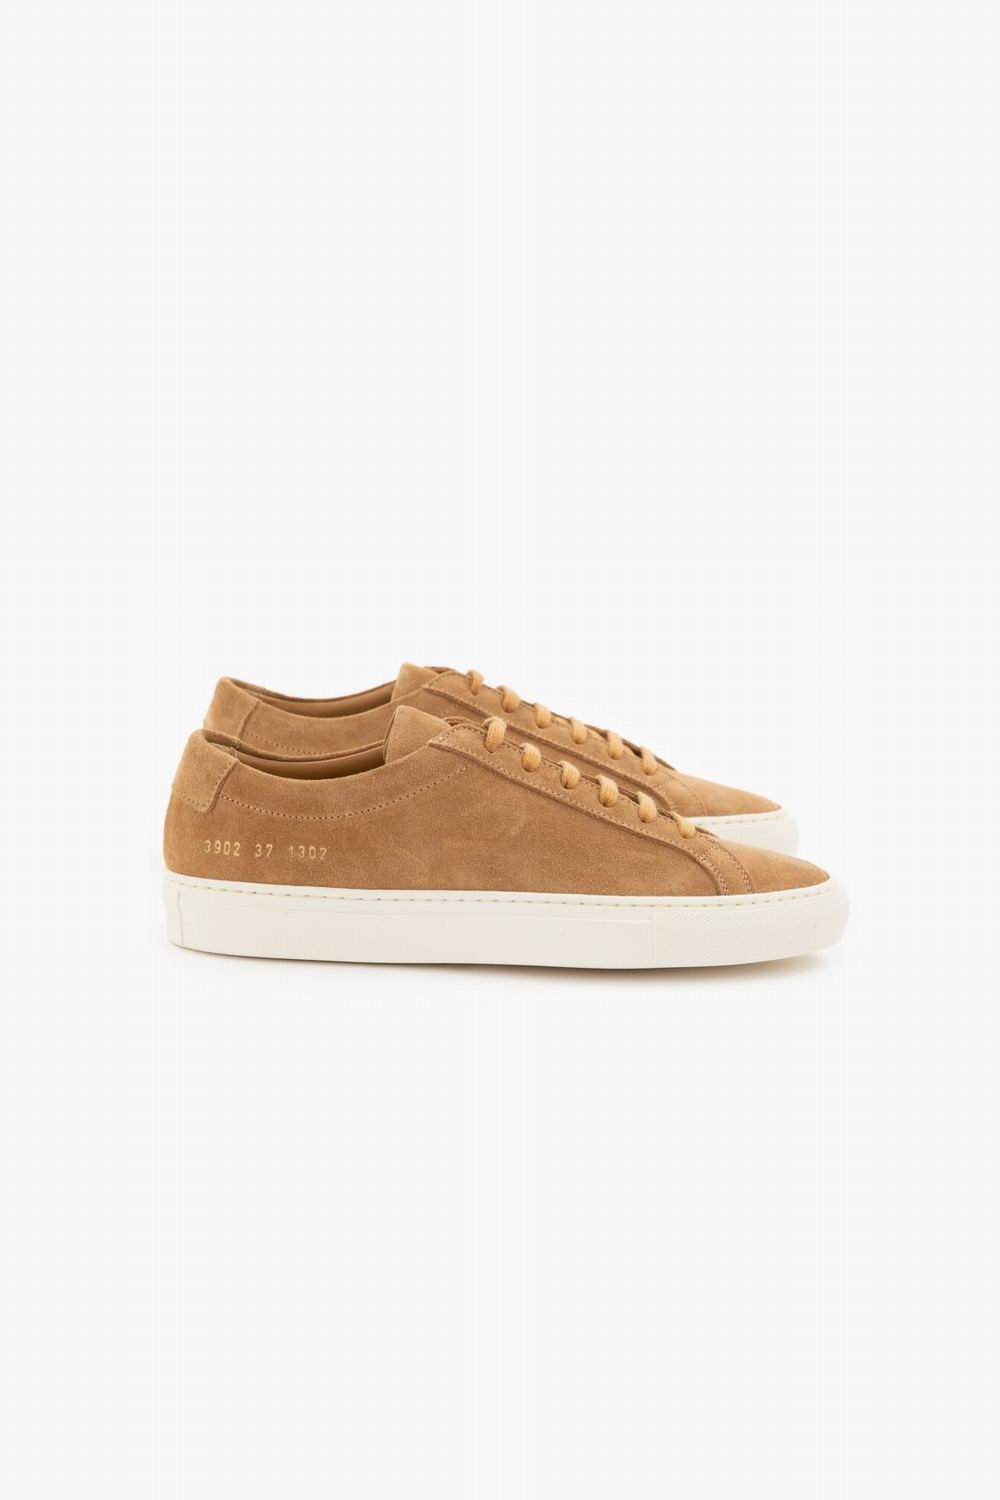 new style most popular usa cheap sale ORIGINAL ACHILLES LOW SUEDE